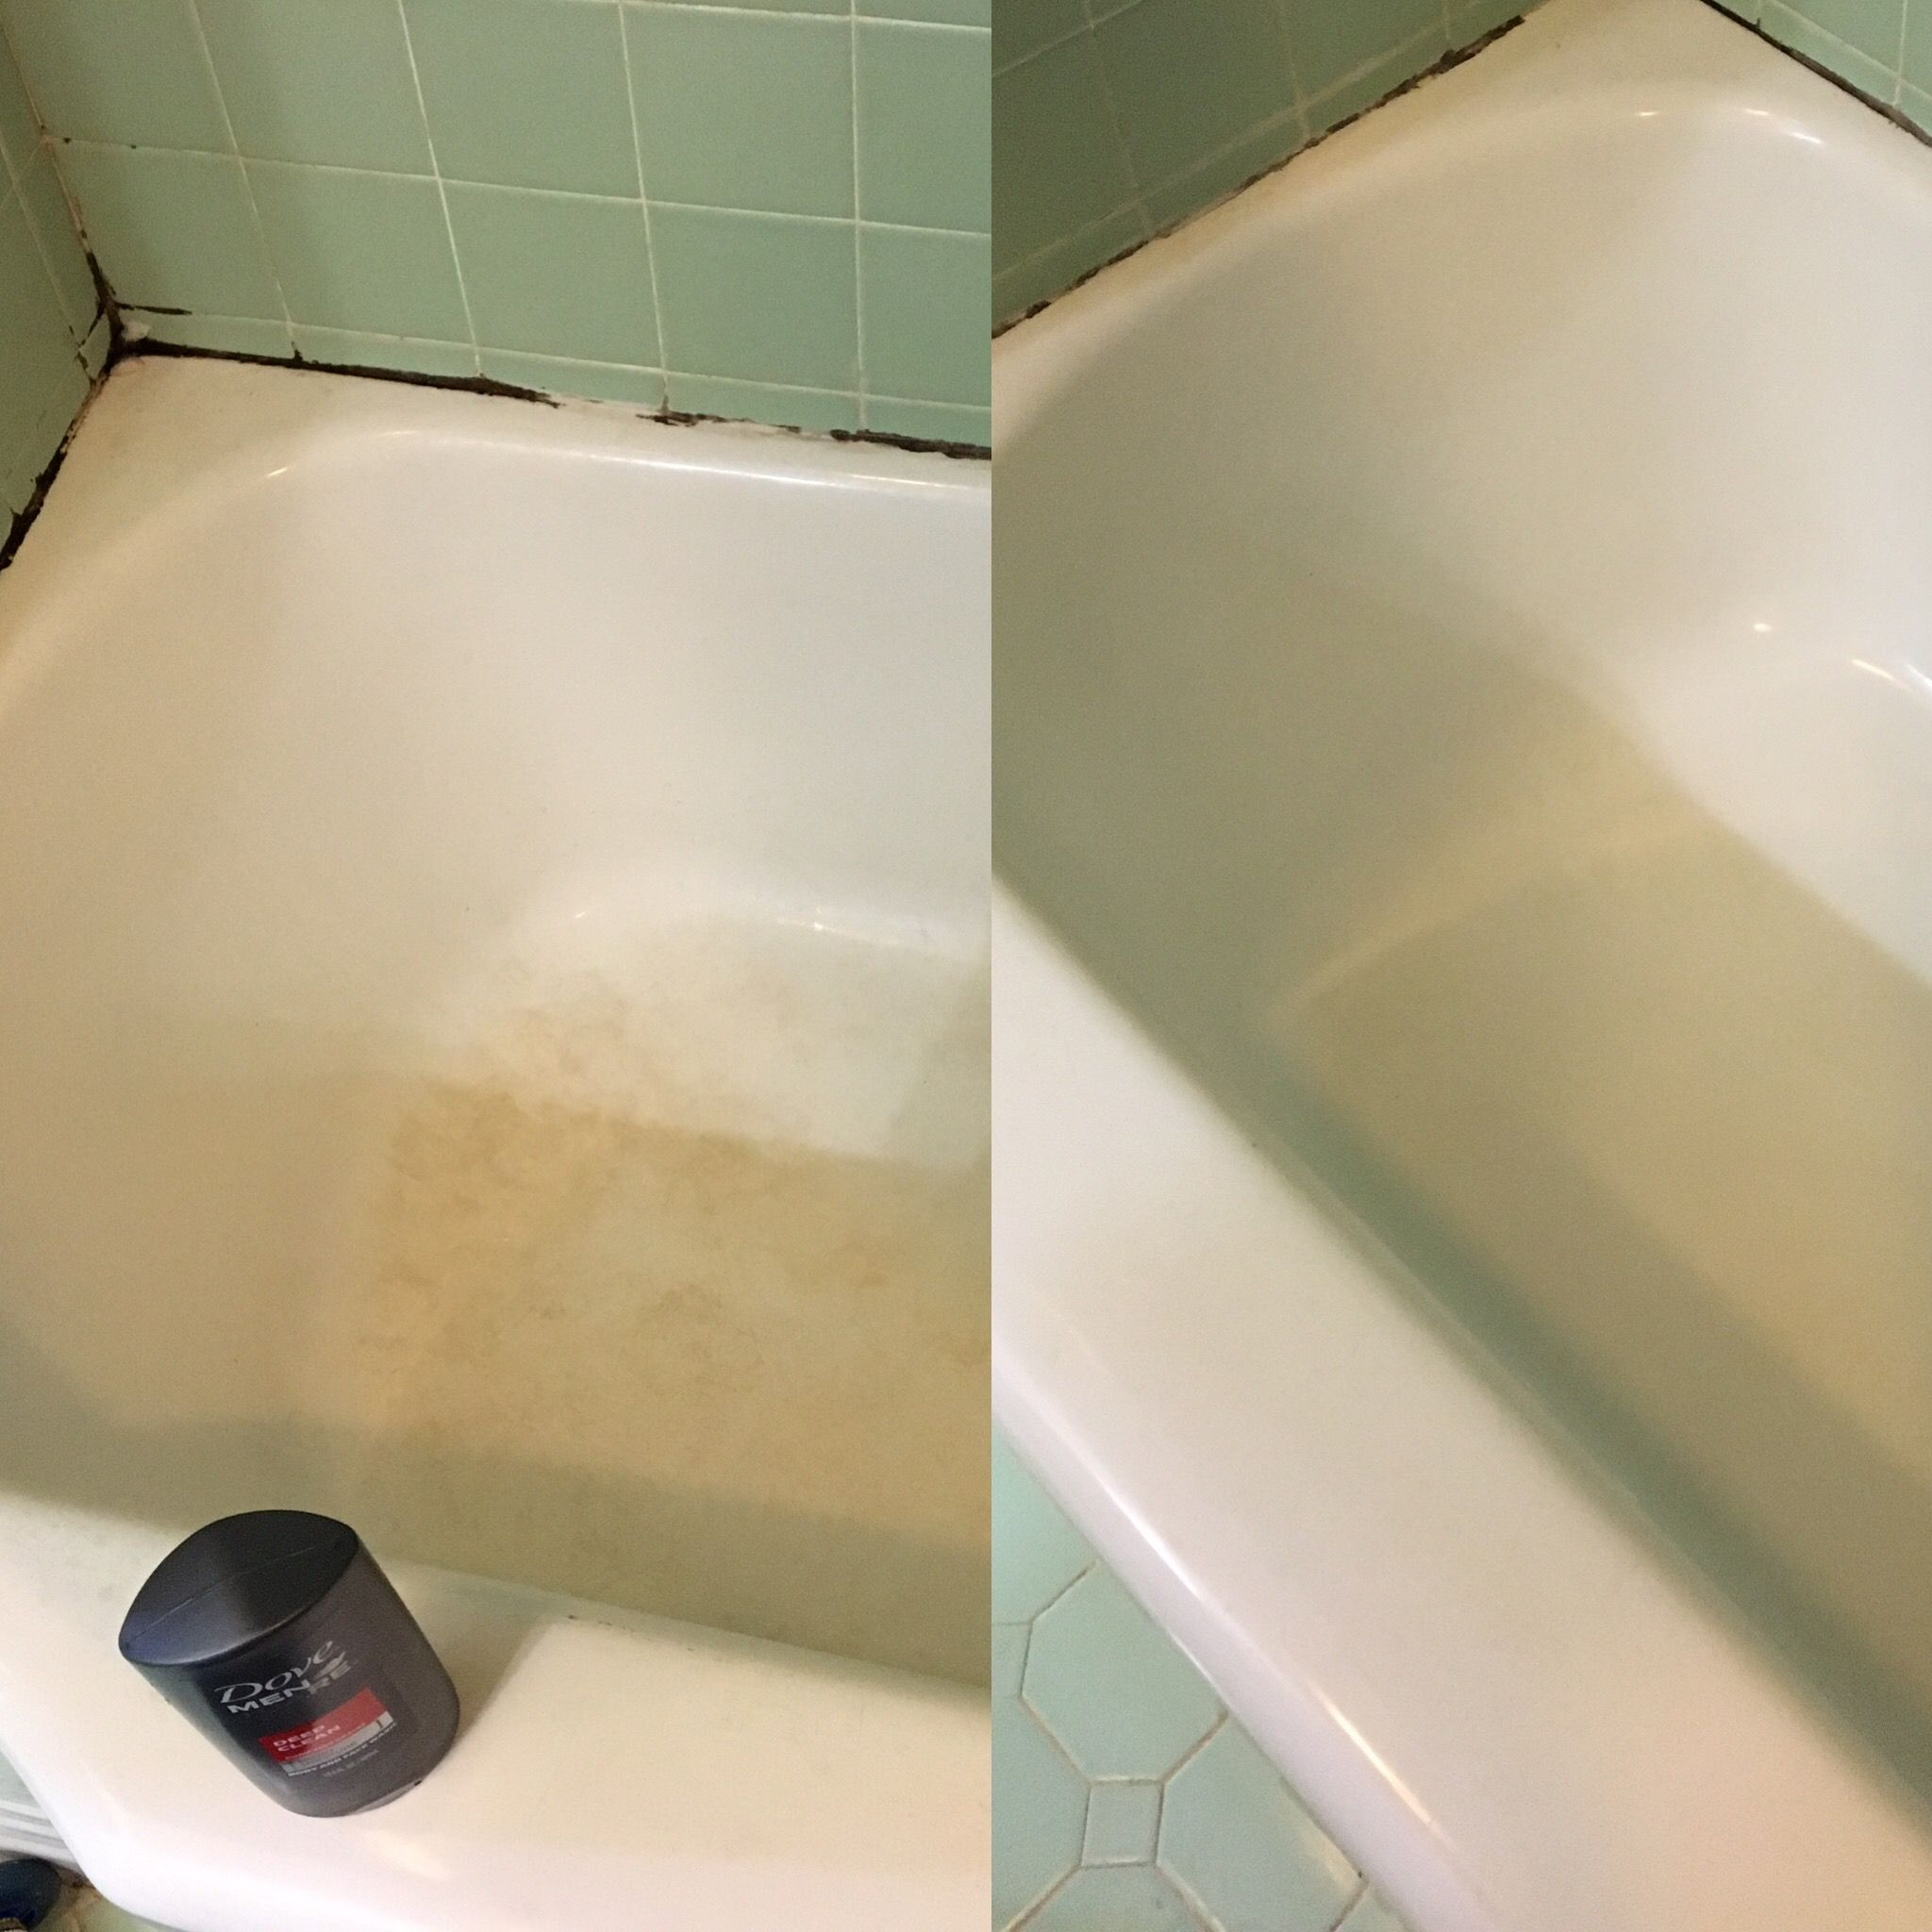 1950s Porcelain Tub Grout Cleaned W Barkeepers Friend And Brush Then Stains Removed Magic Eraser Mold Around Edges Is Behind The Caulk